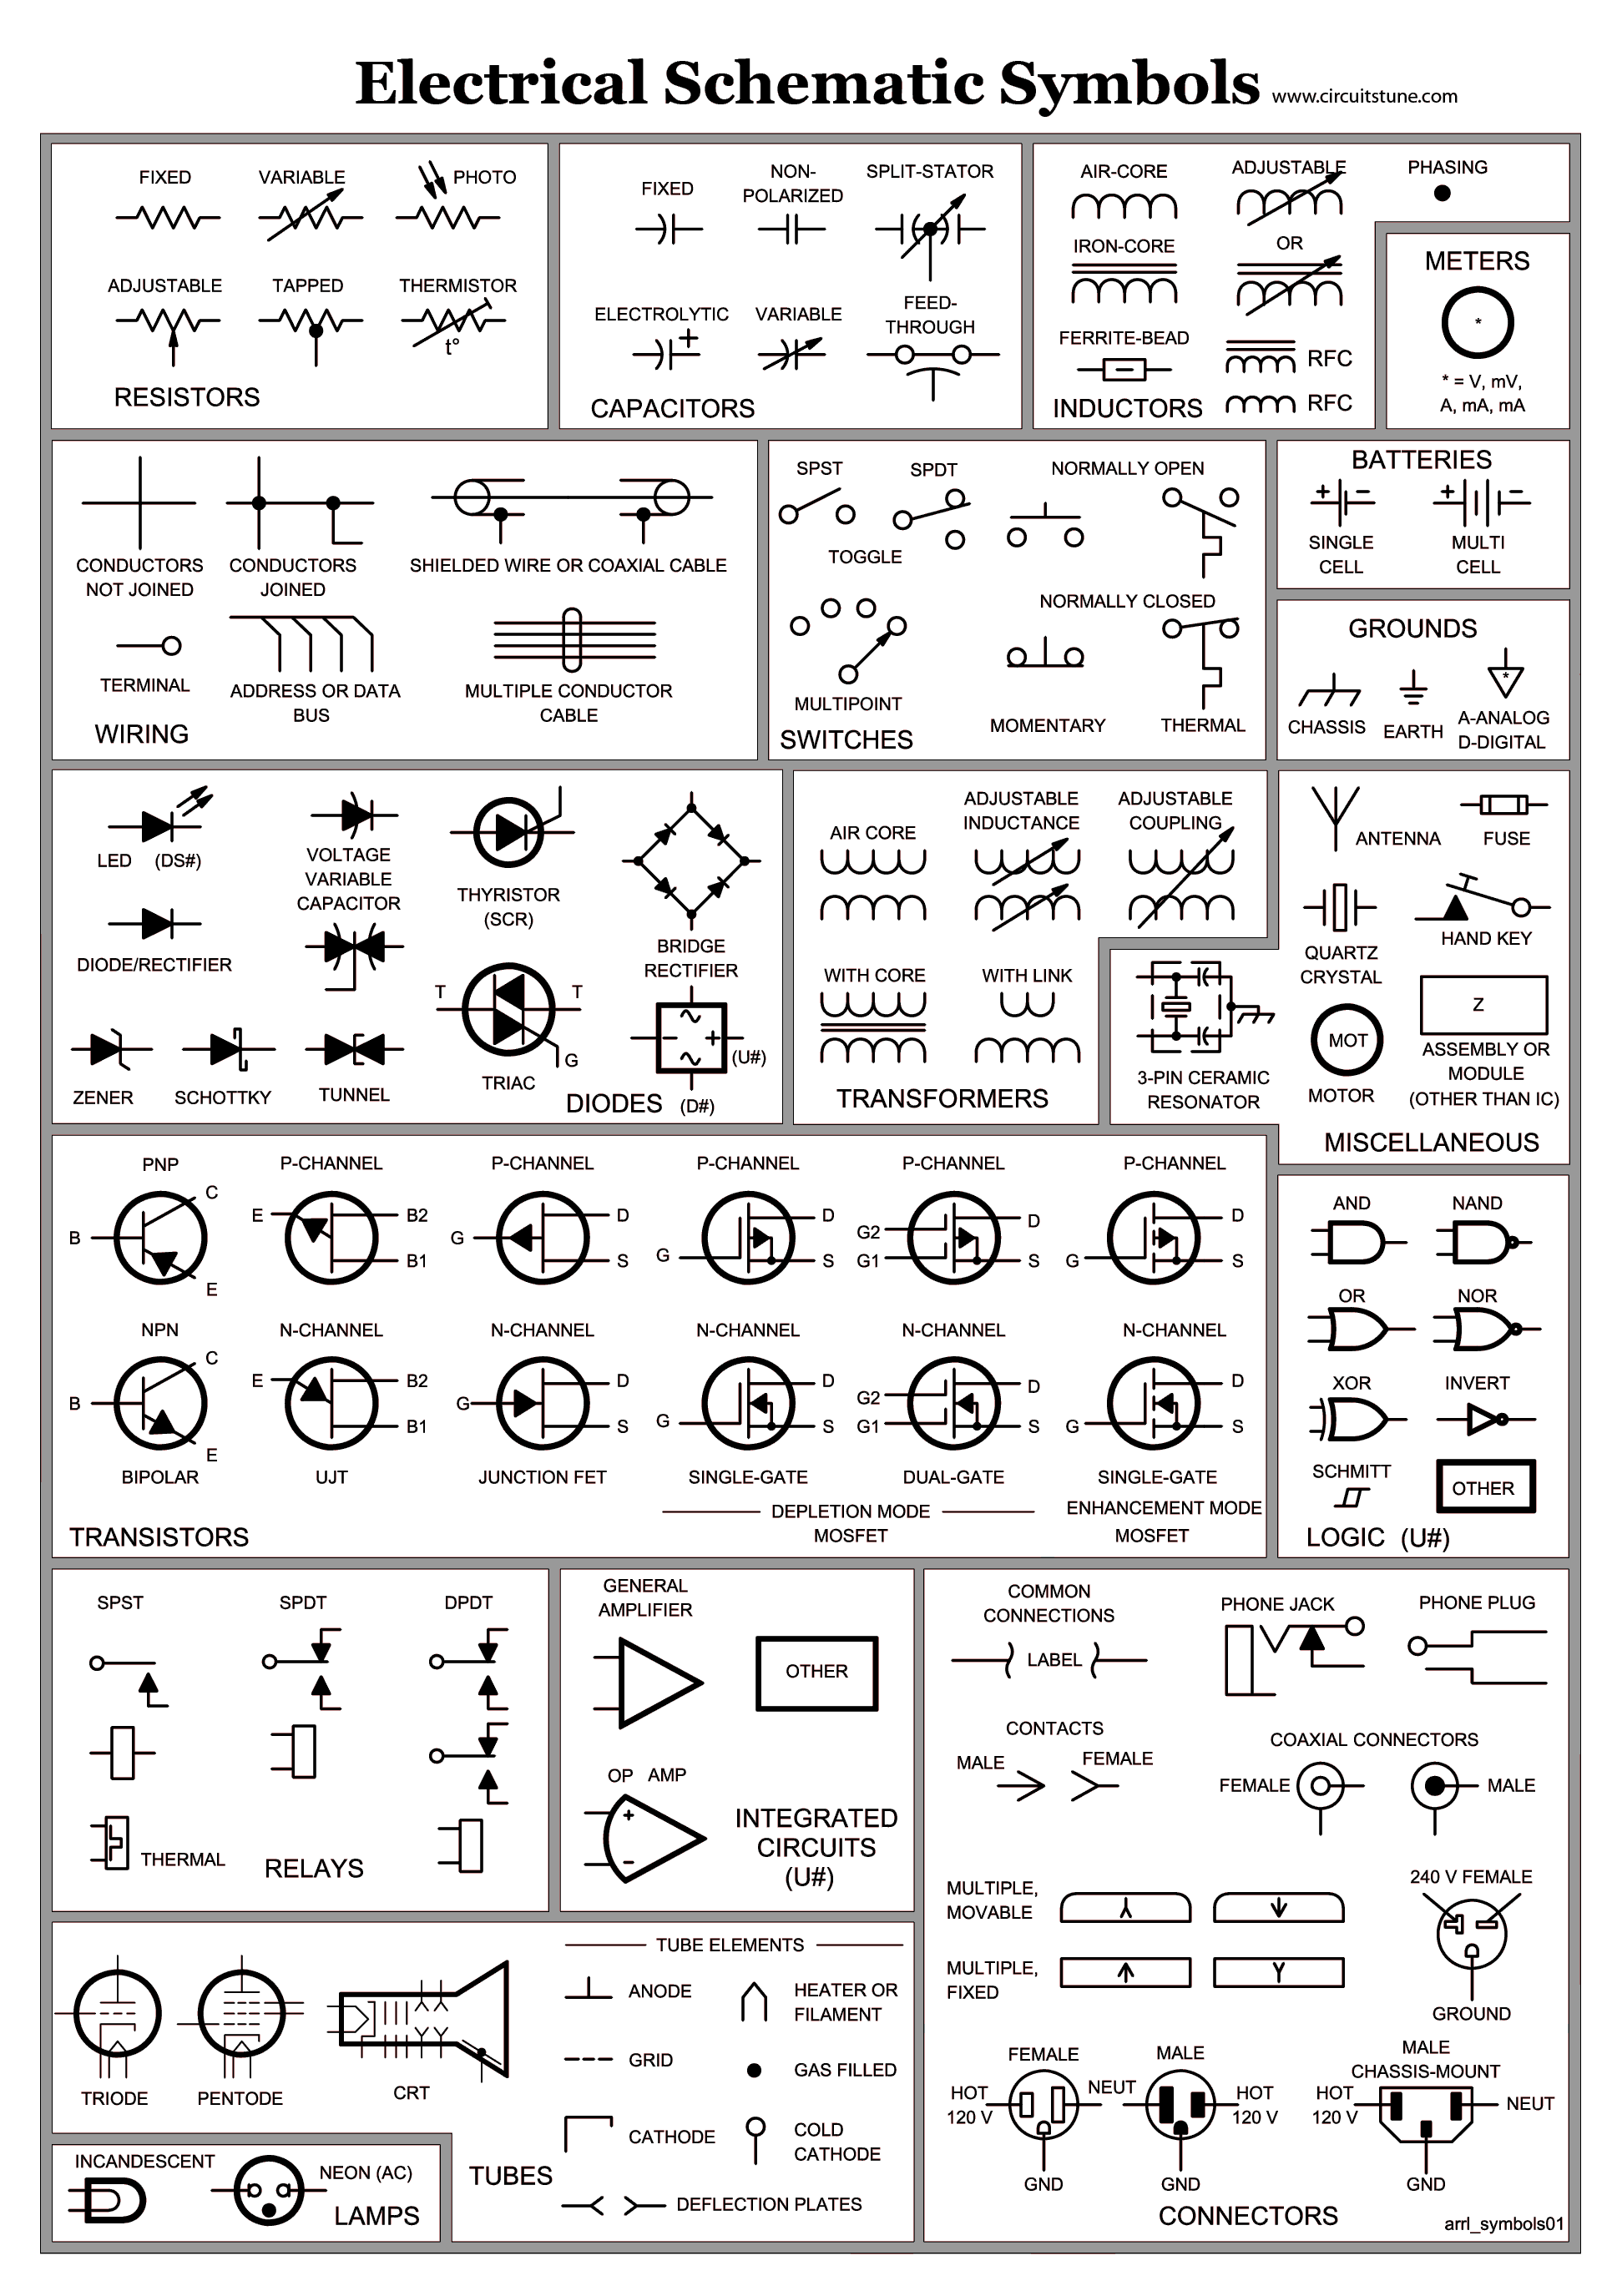 medium resolution of wiring diagram symbols valve drawing symbols 12v ac to dc converter dc electrical schematic symbols dc wiring schematic symbols